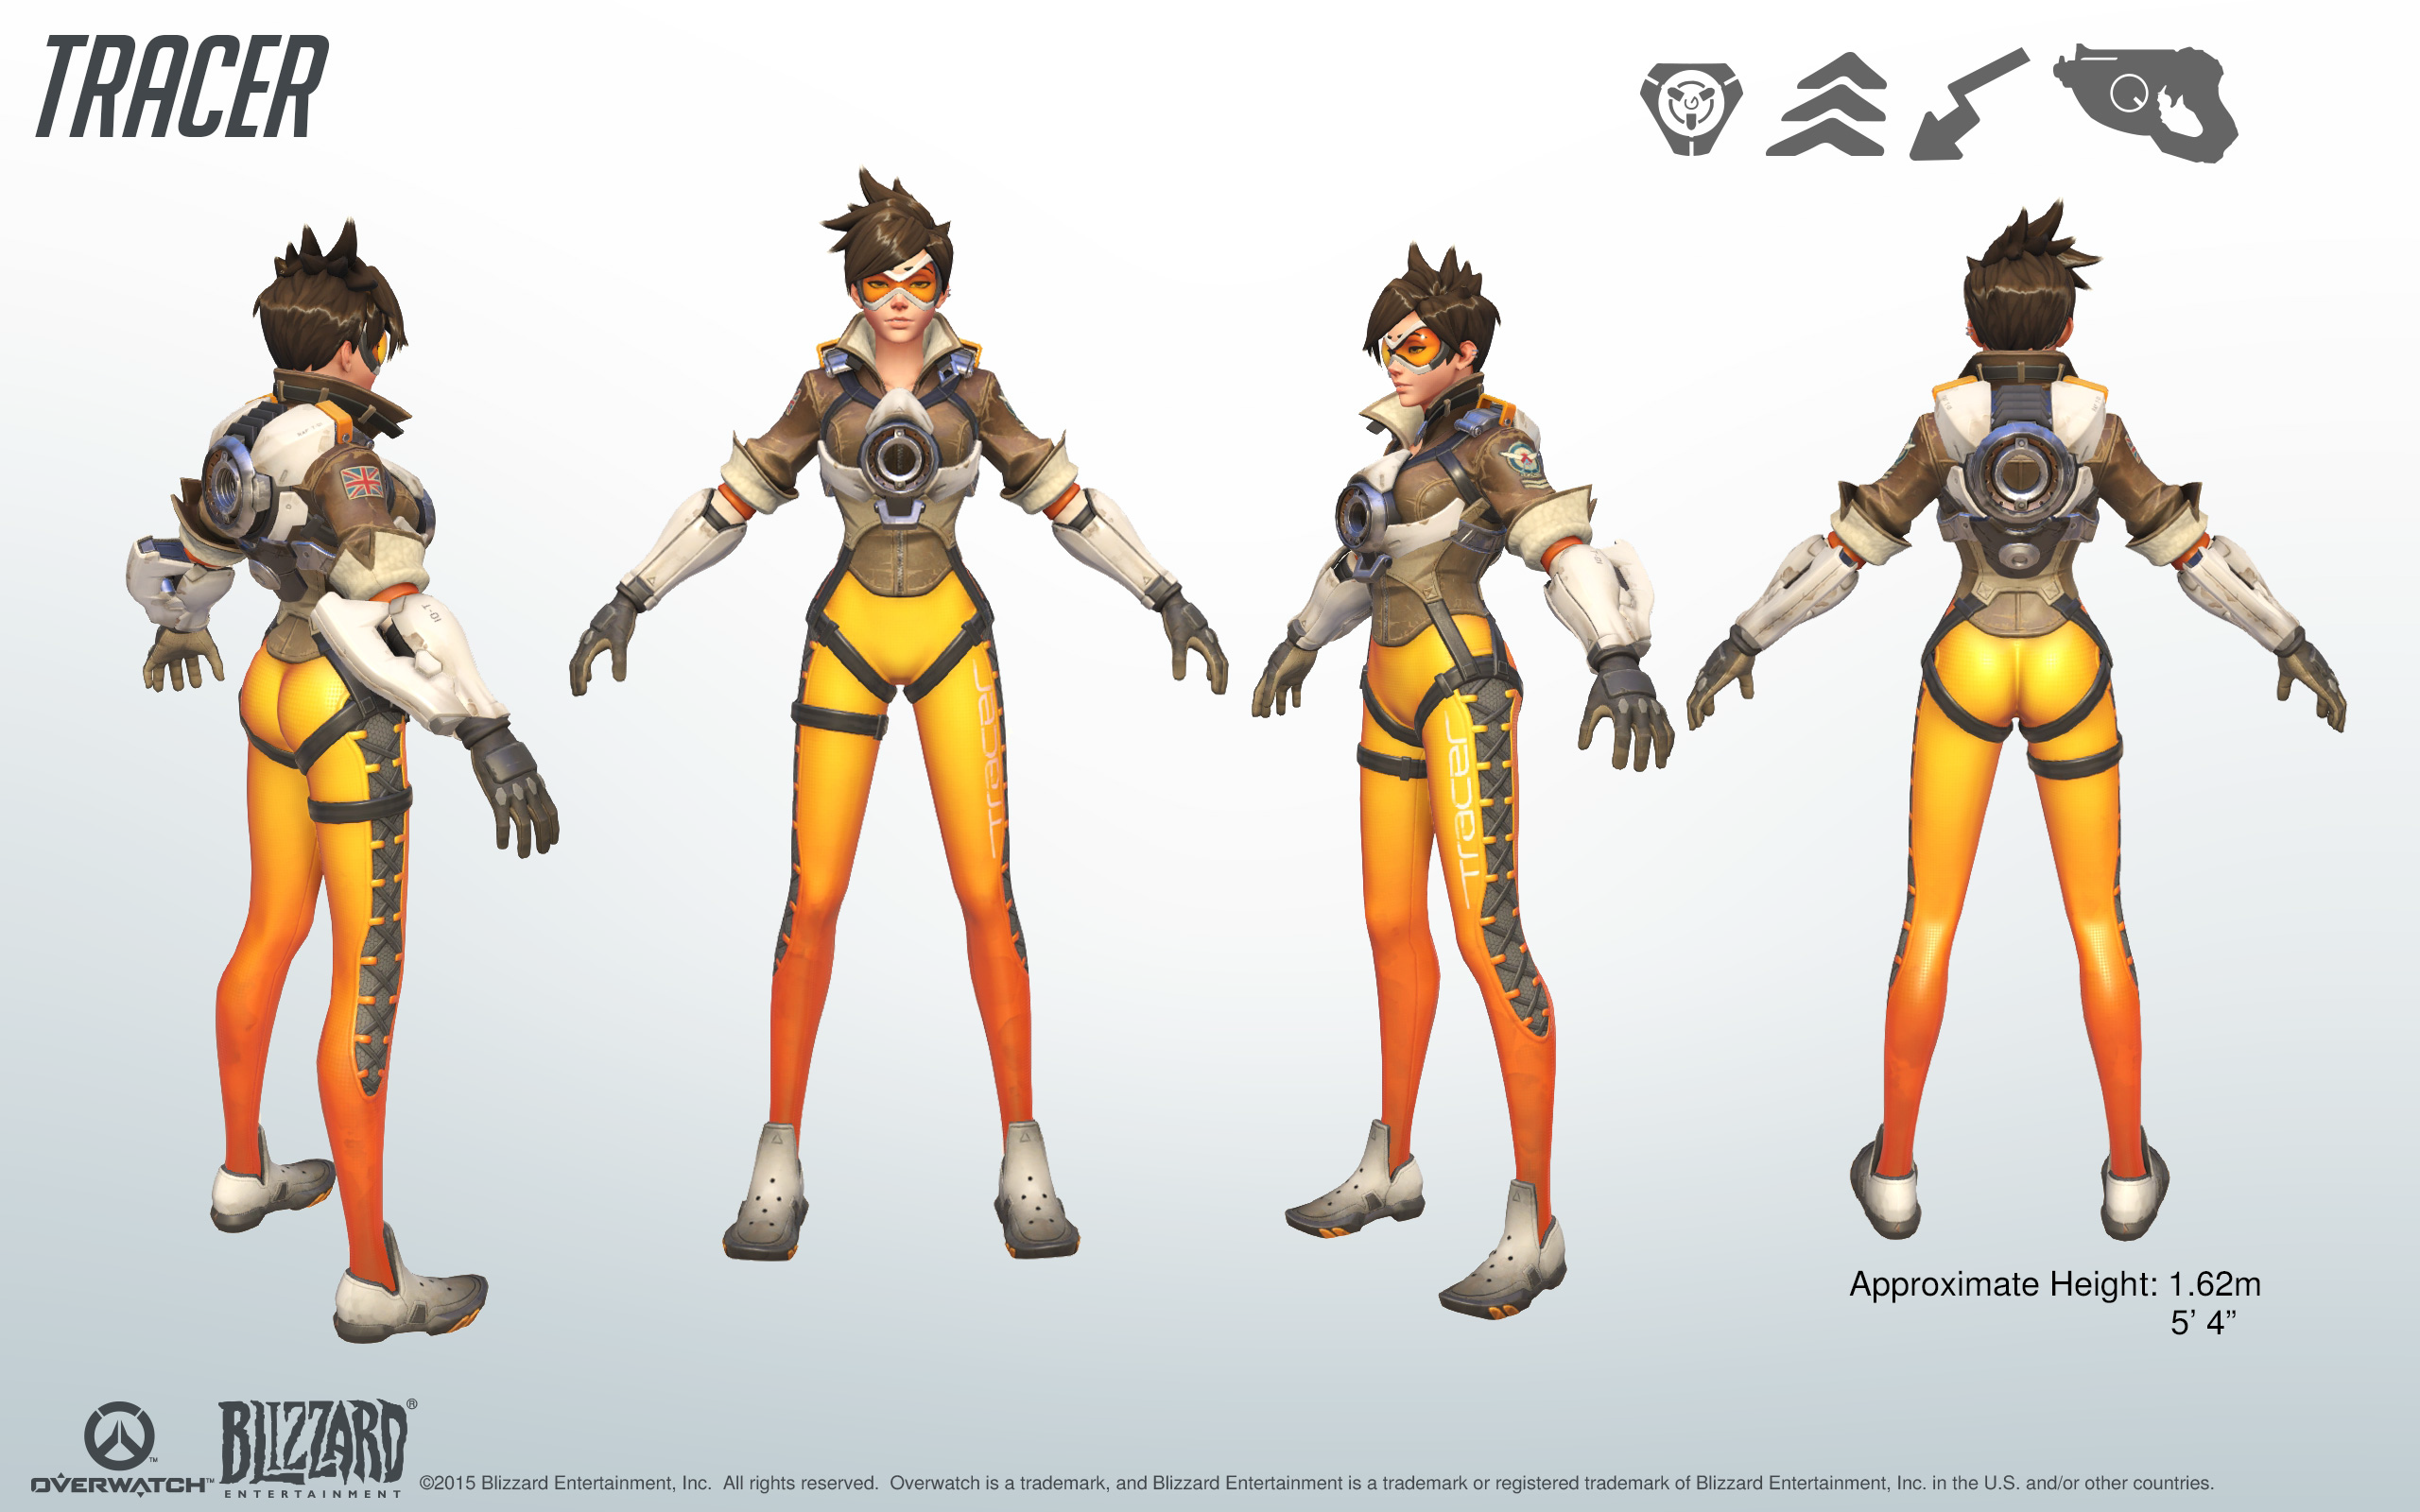 Tracer Reference 3 Png 2560 1600 Overwatch Tracer Overwatch Tracer